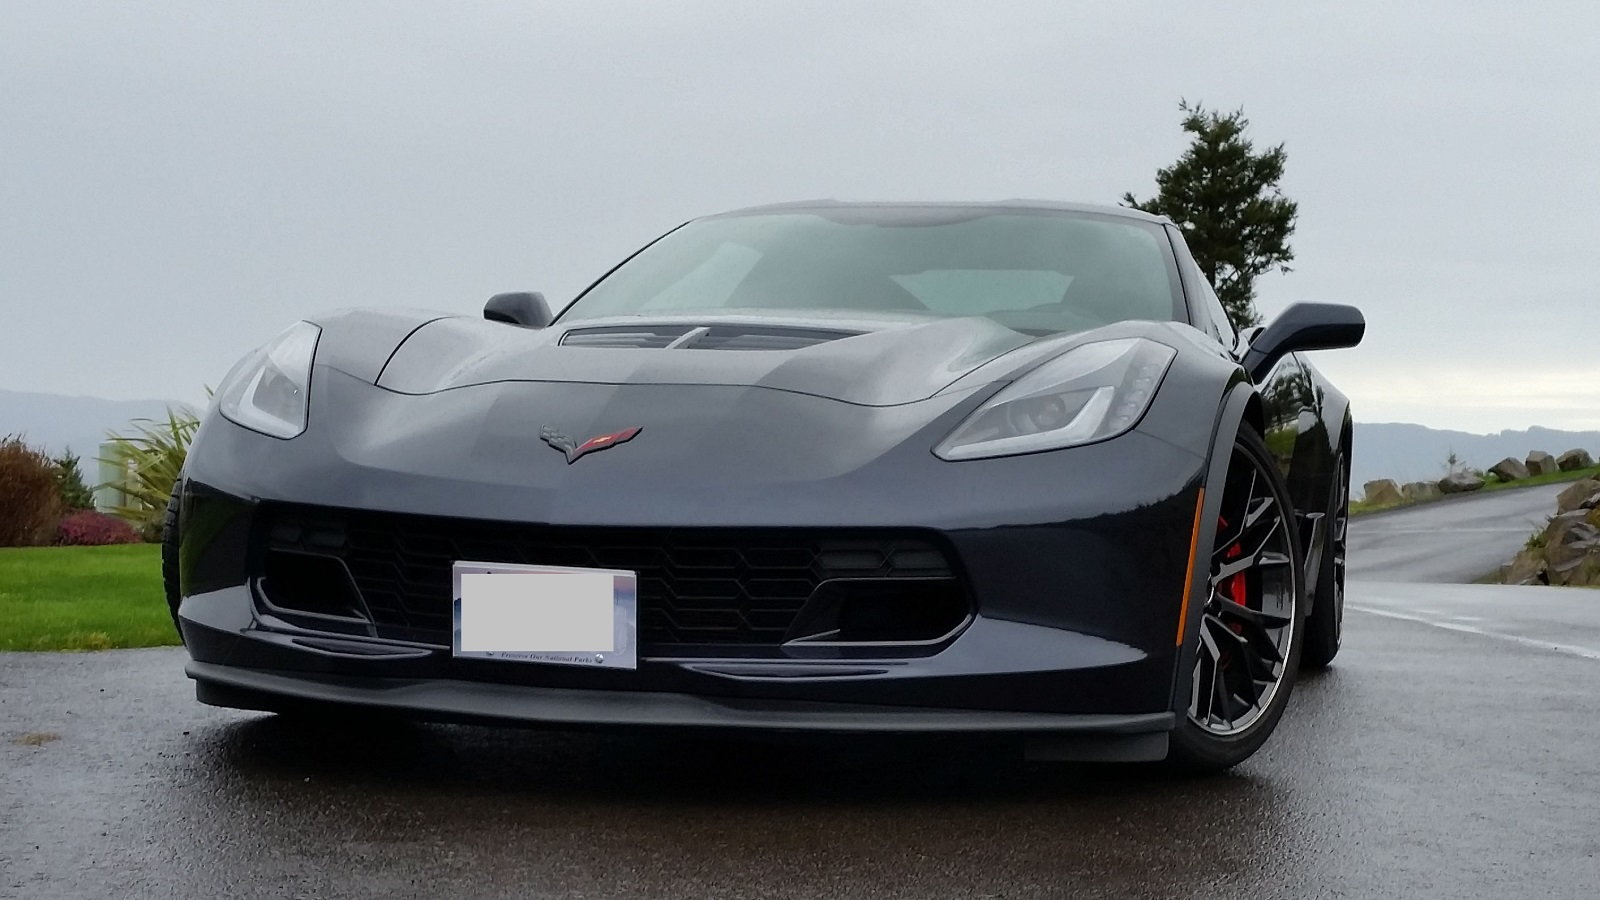 5. Corvettes are reliable sports cars